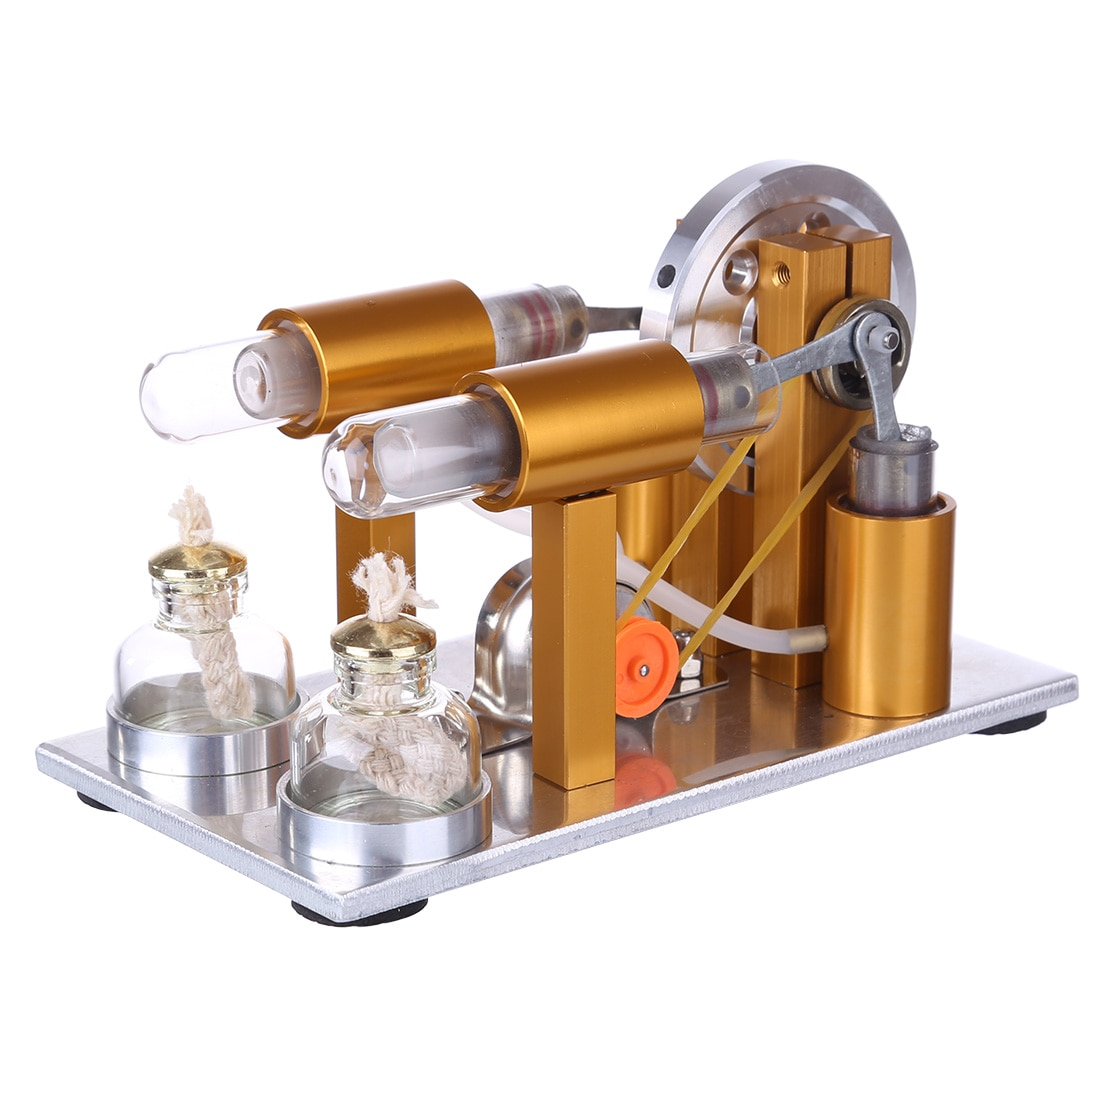 Two-cylinder Stirling Engine Model Physics Experiment Generator Model (Random Color of Bulb) - Golden stirling engine generator engine micro engine model steam engine hobby birthday gift